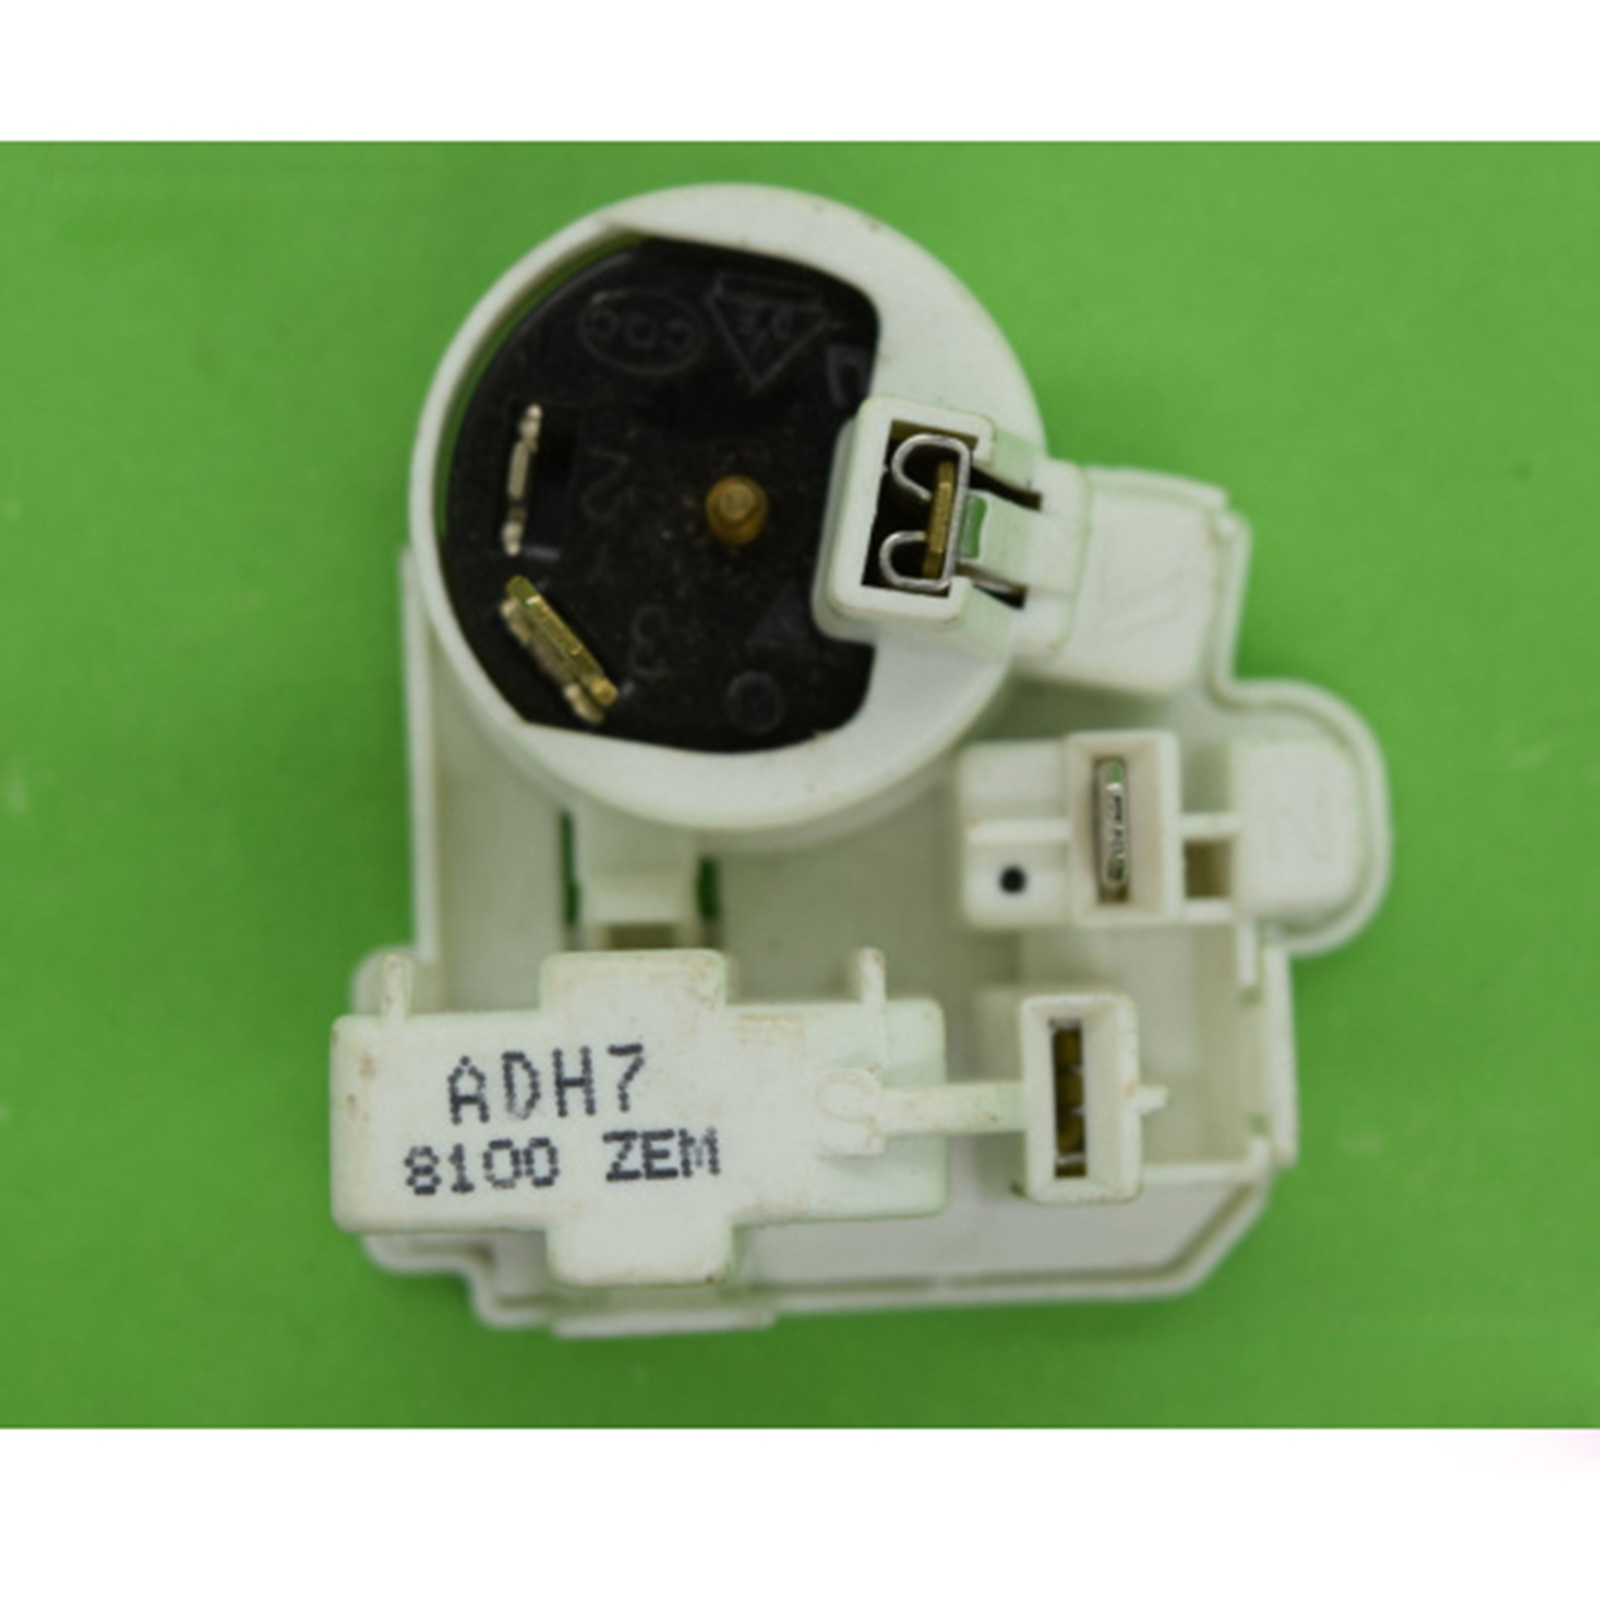 Refrigerator Start 8100ZEM90-130-74 Refrigerator Compressor Combination PTC Starter Replacement Parts